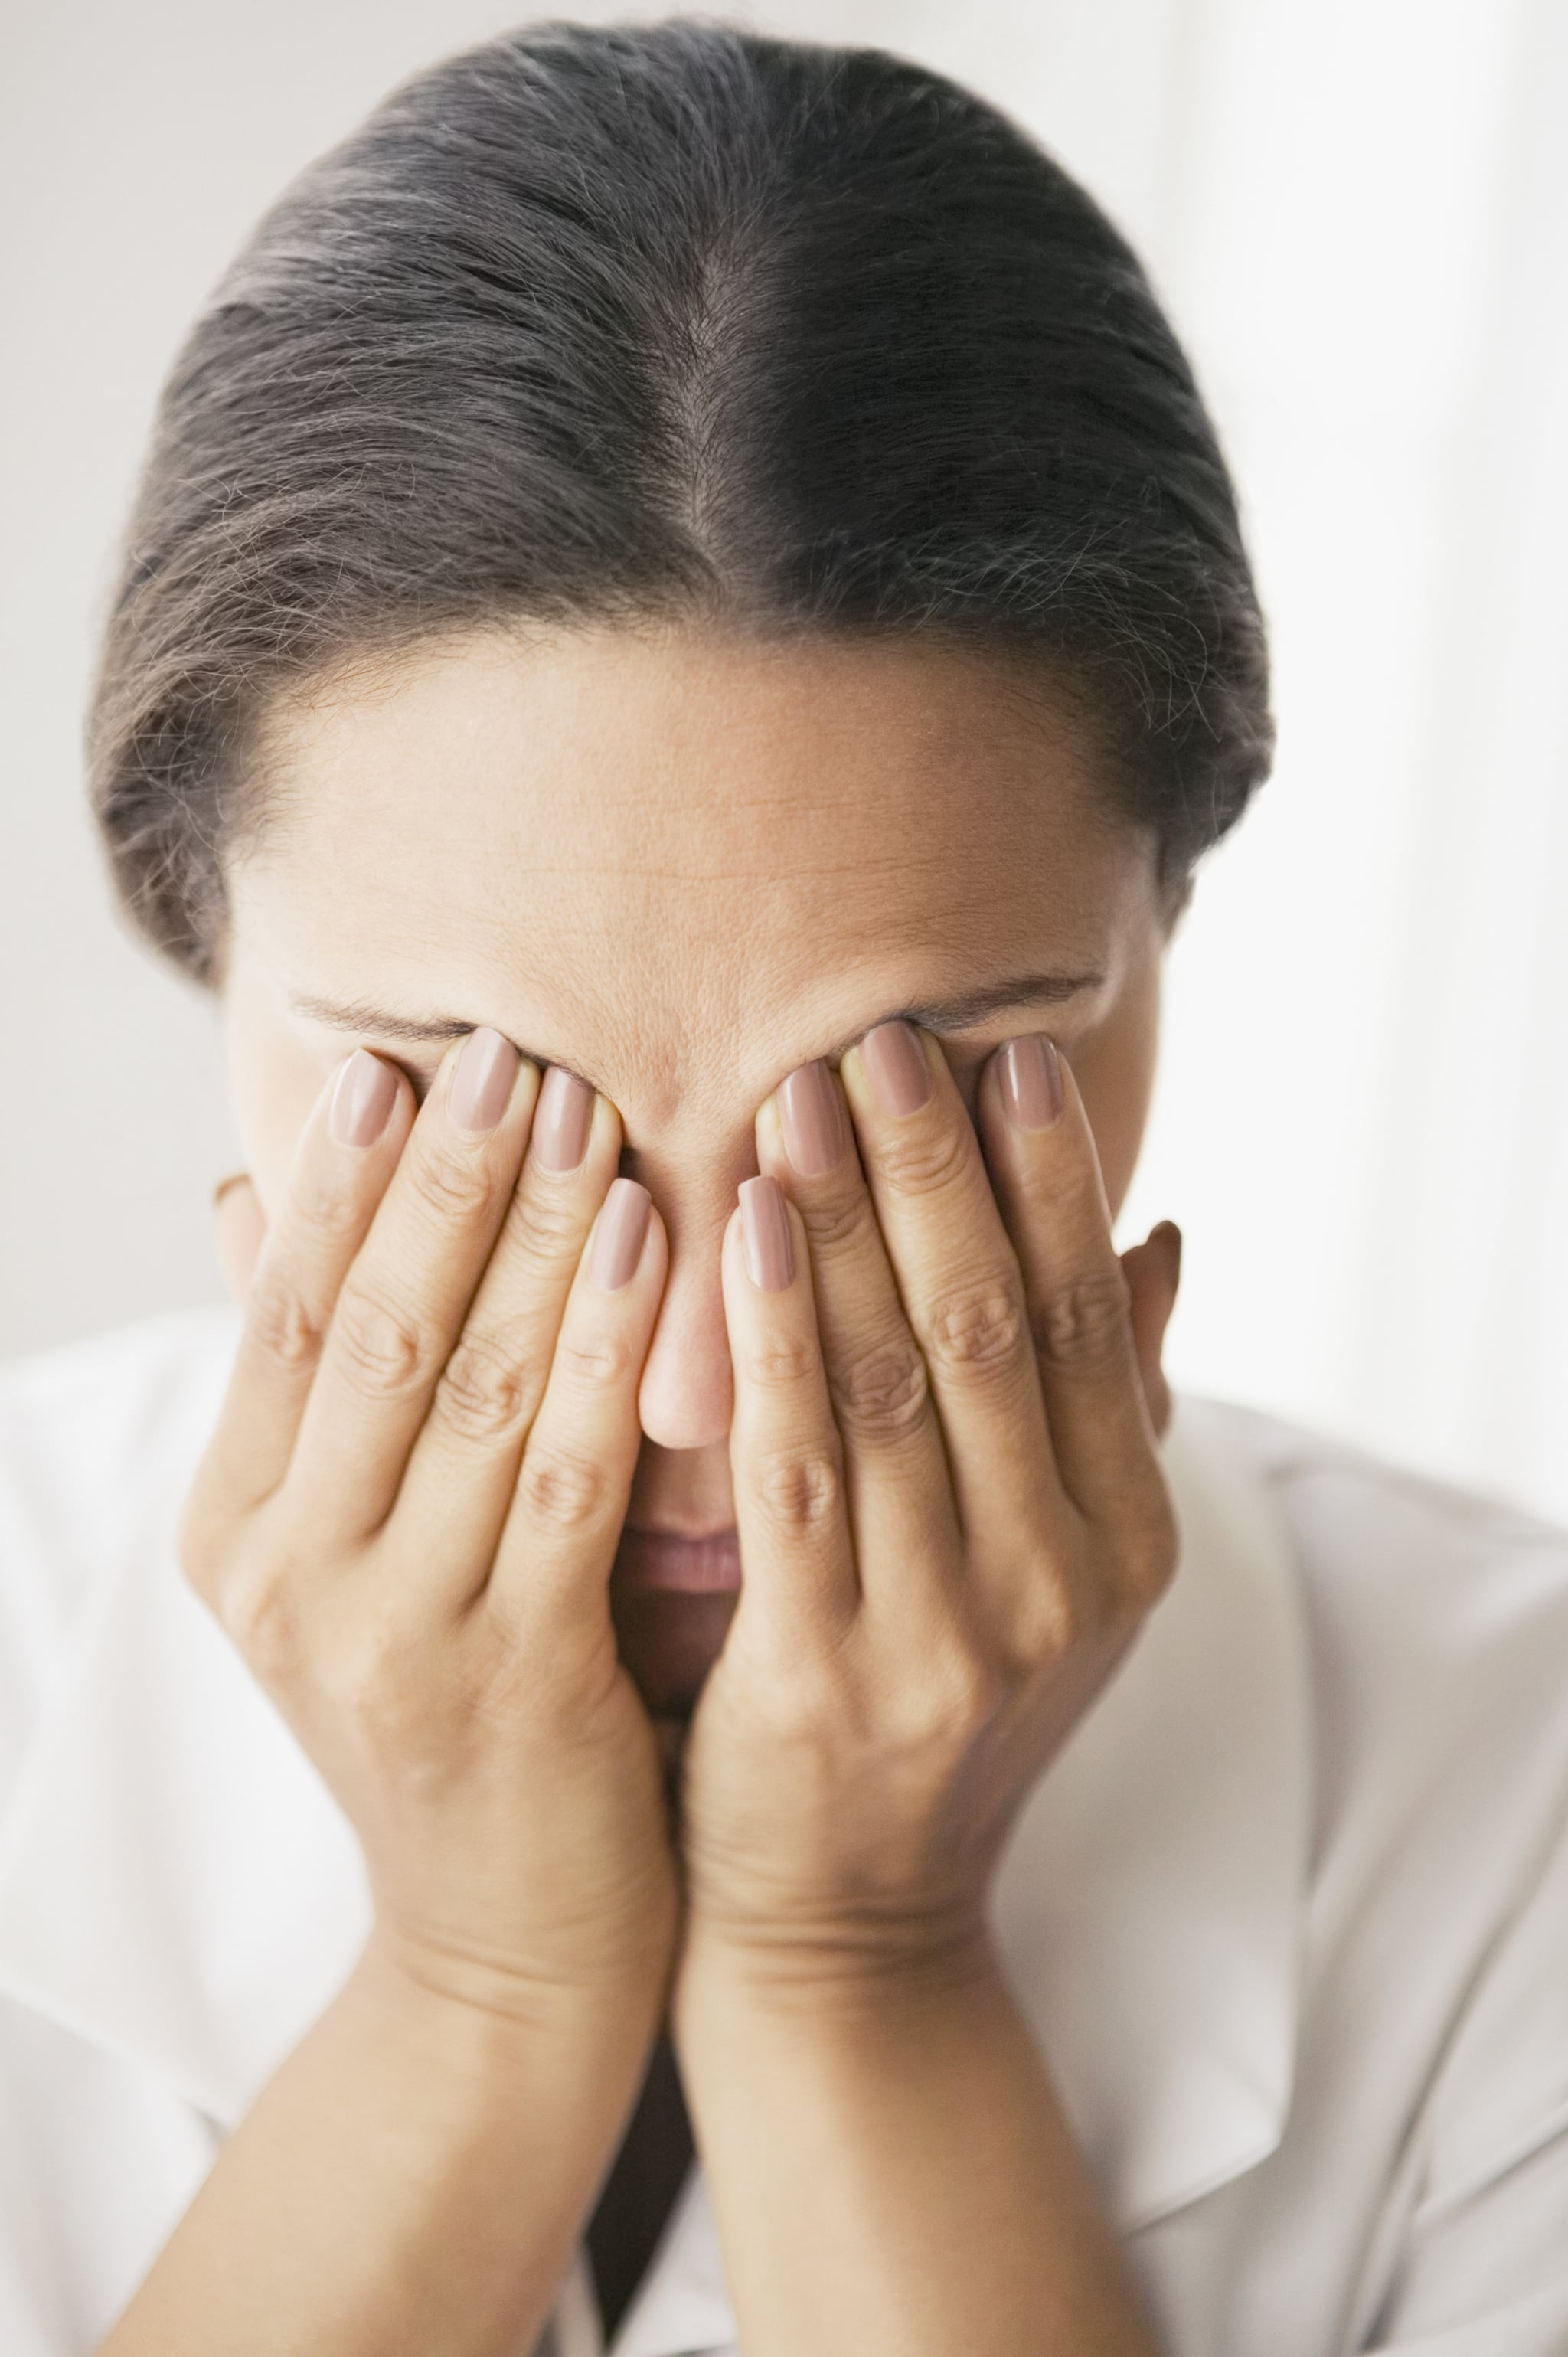 Is Your Self-Diagnosed Sinus Headache Really Just a Horrible Migraine?